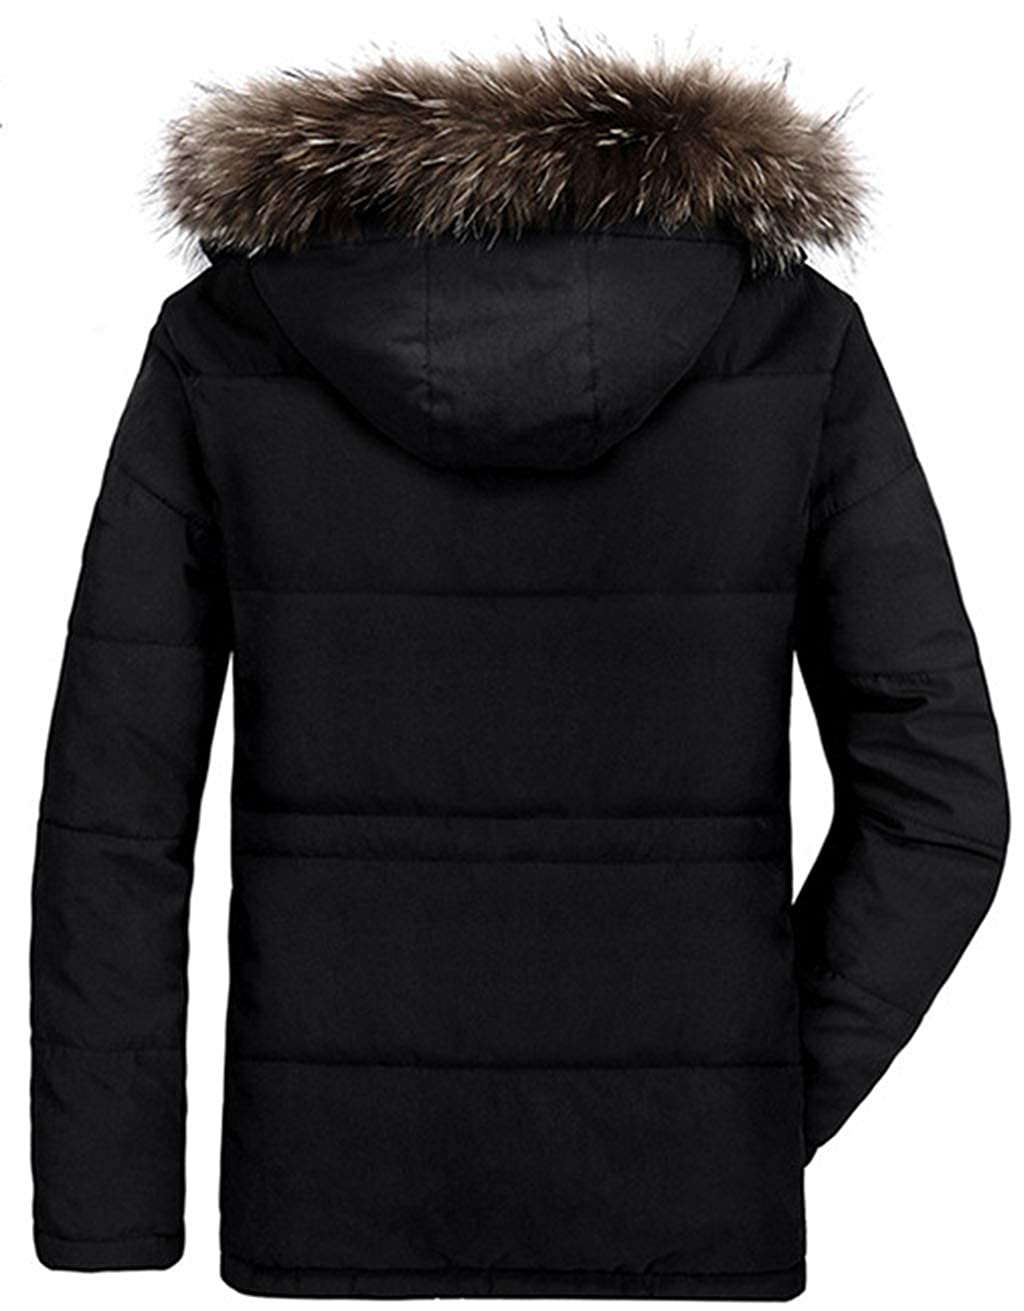 Mens Parka Winter Coats Jackets with Faux Fur Lined Thicken Warm Coat Hooded